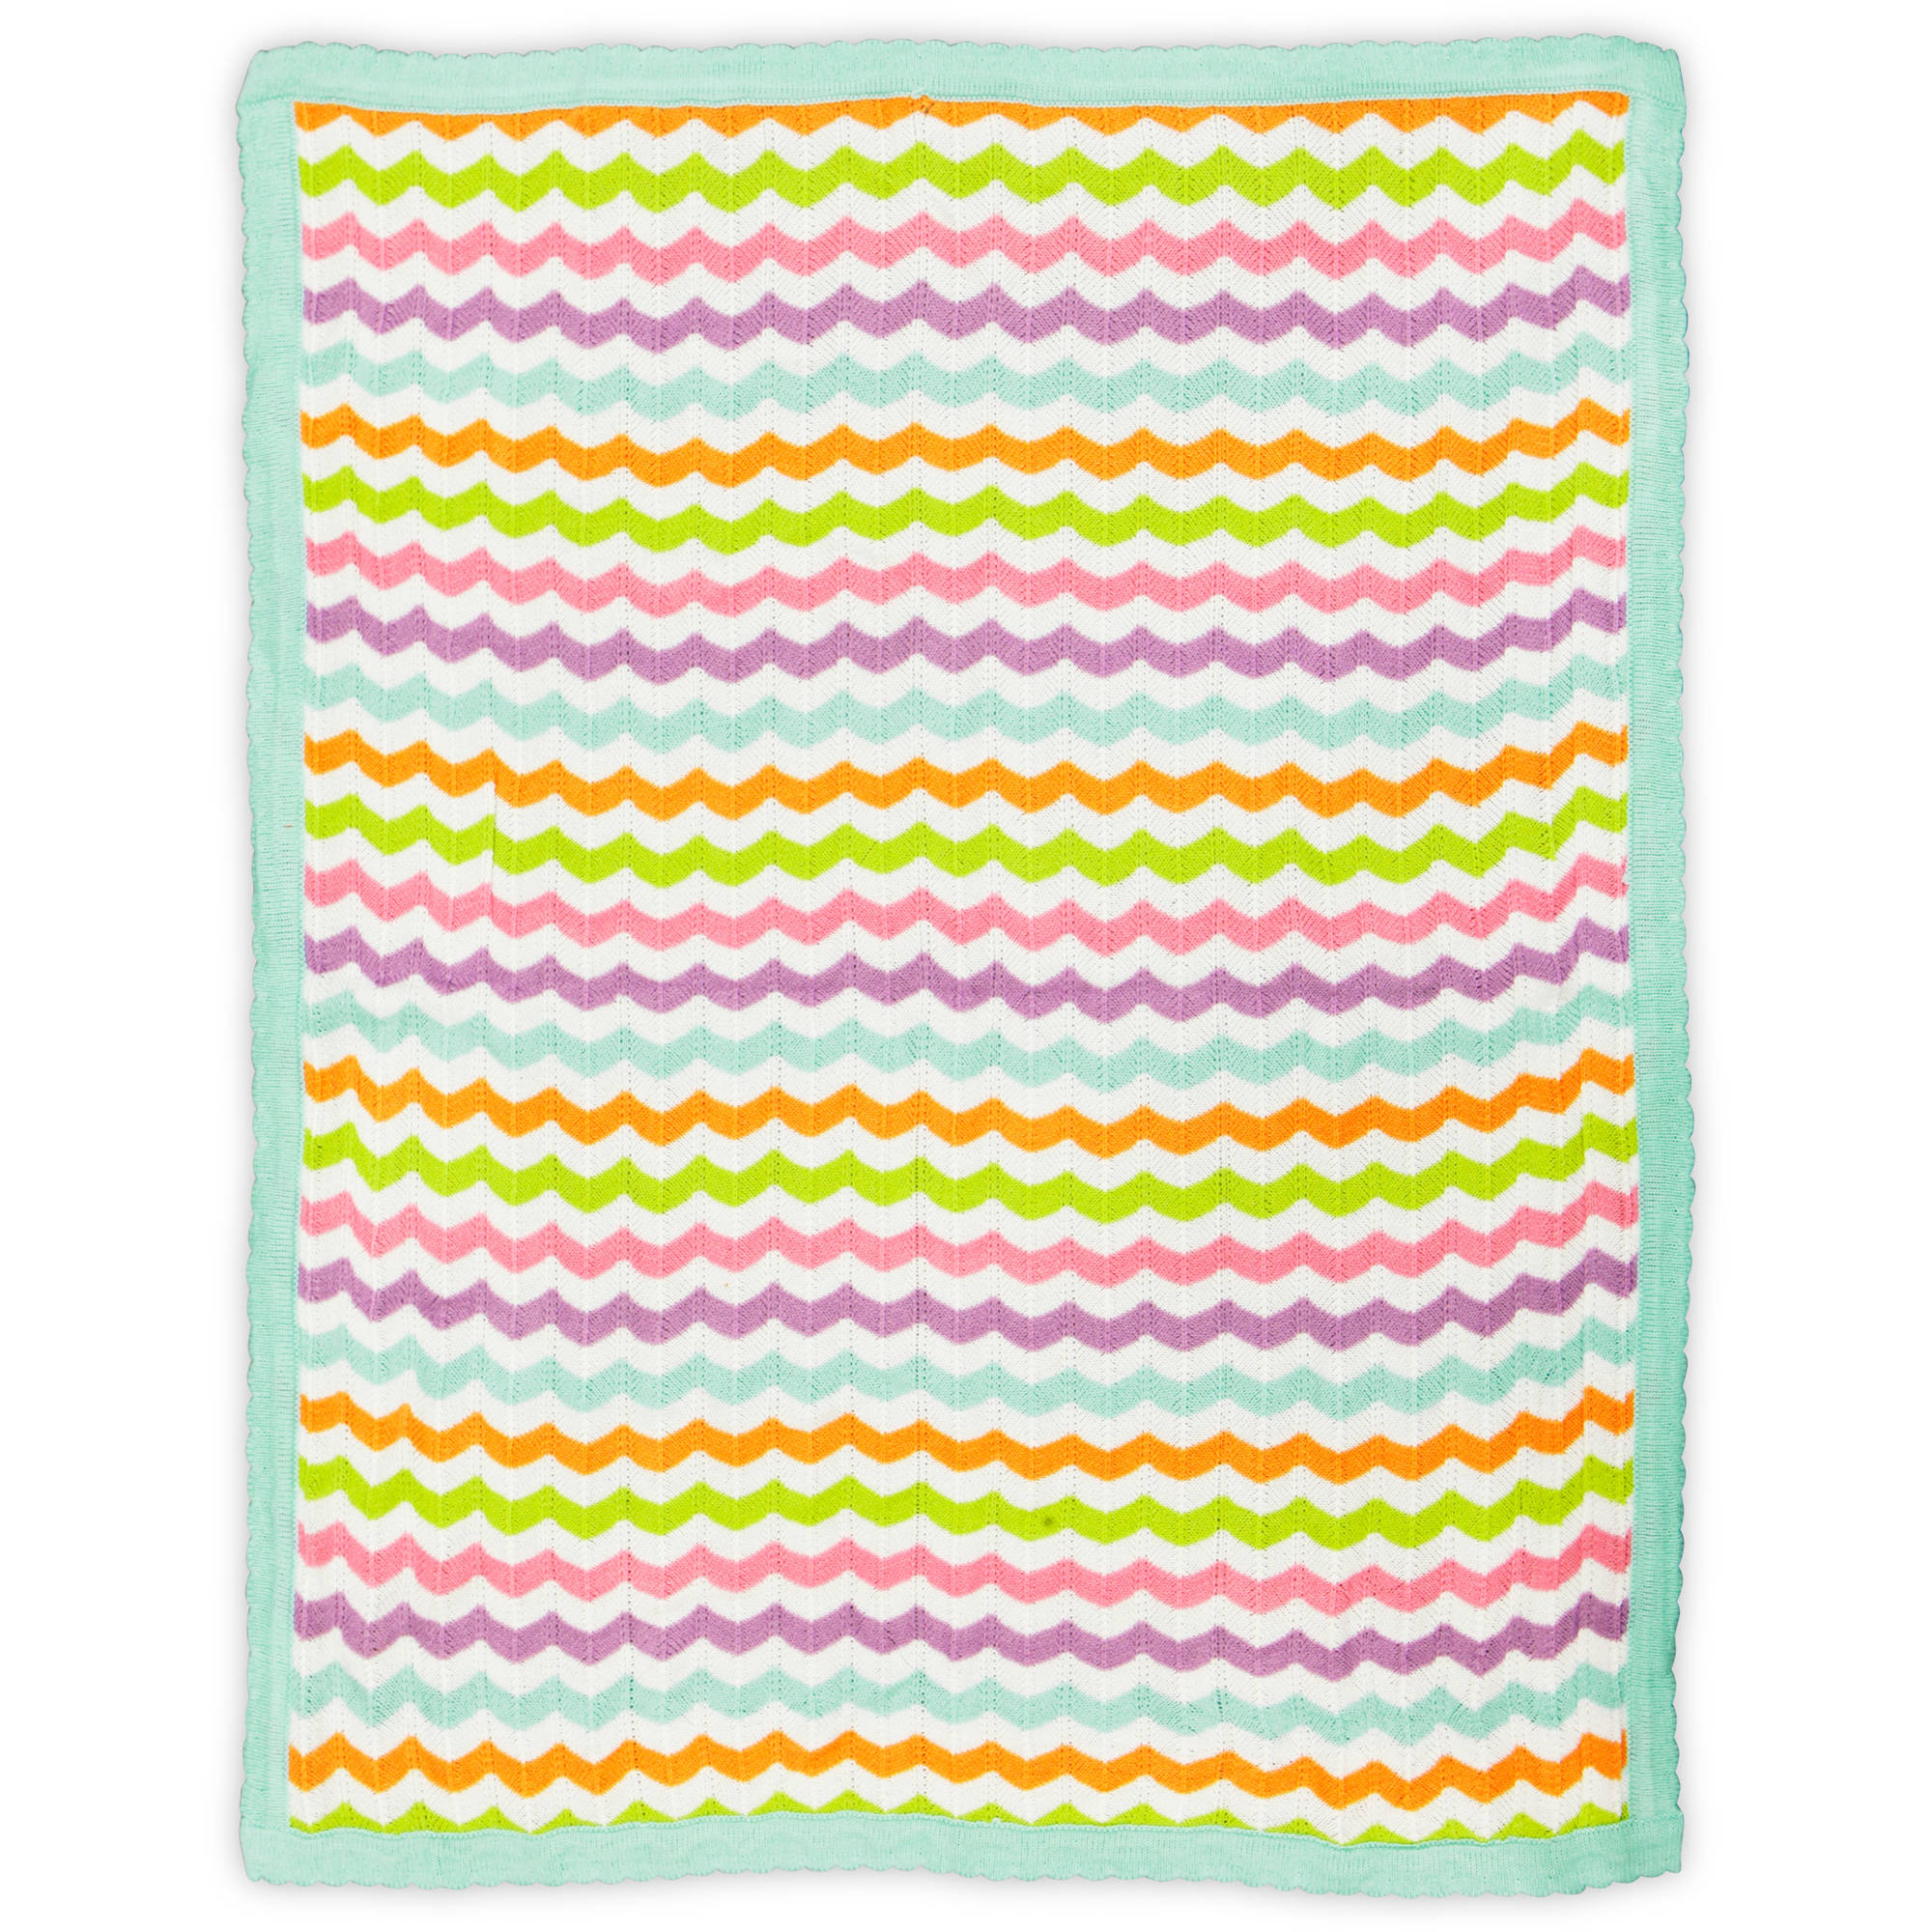 Bananafish Studio Sweet Owl Girl Zigzag Knit Blanket